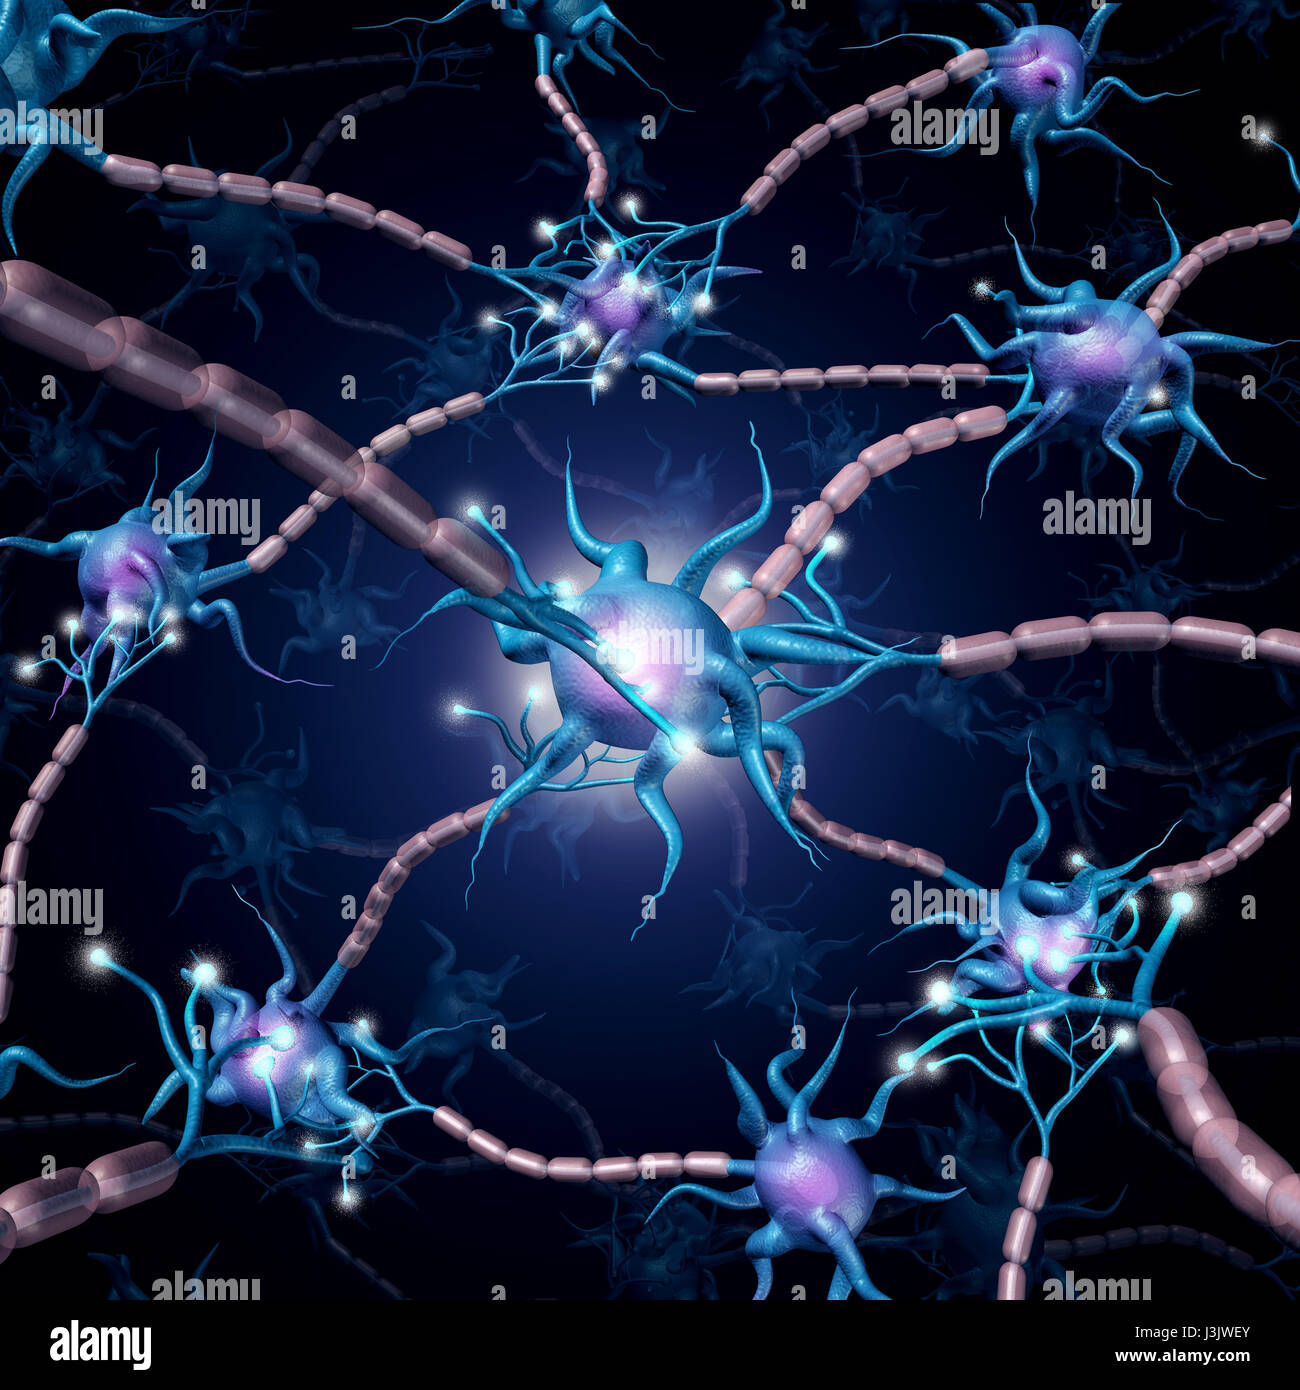 Neuron active cells as a group of neurons communicating with one another as a mental health or neurology concept. - Stock Image